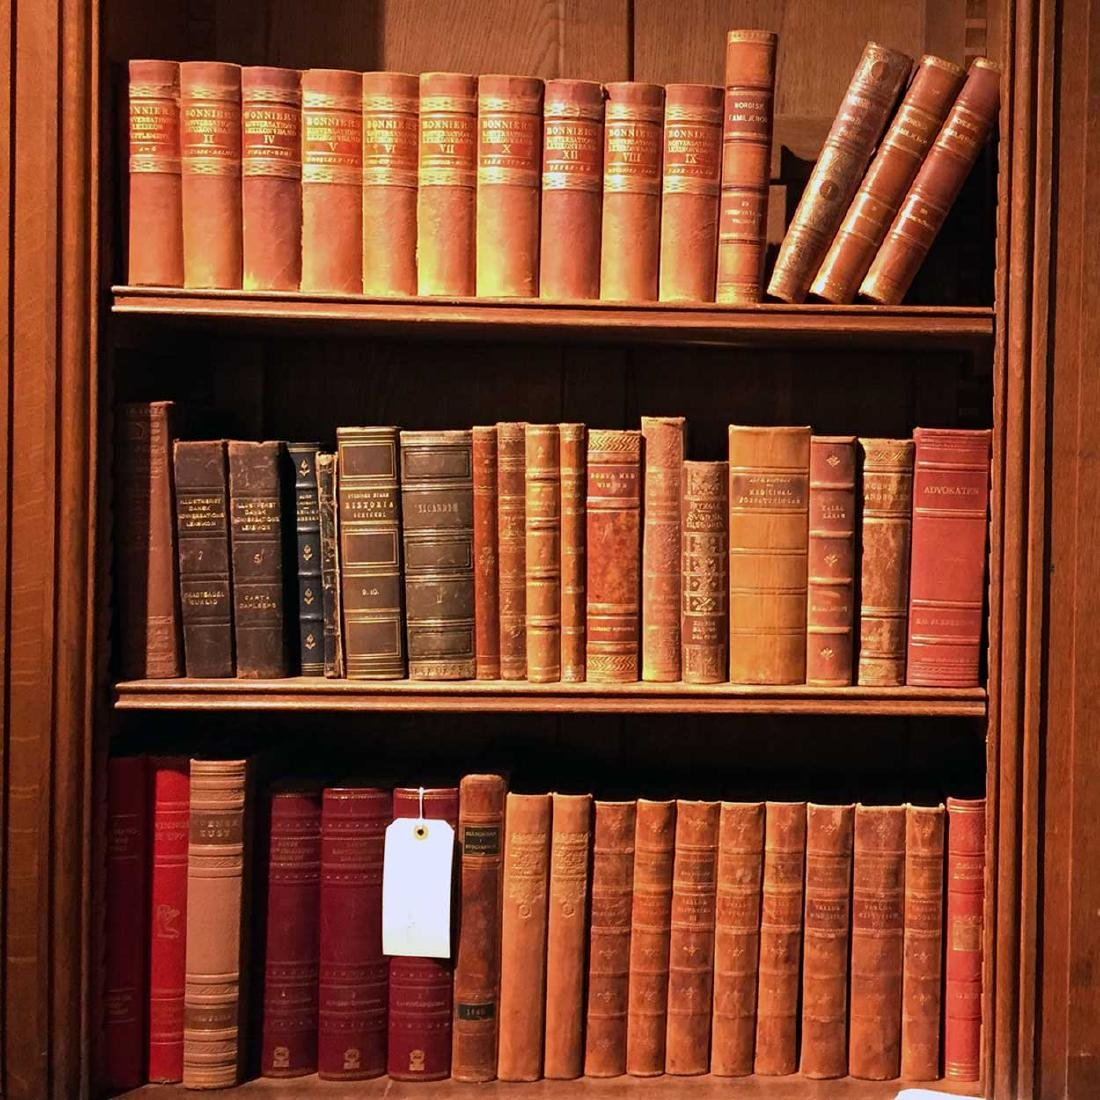 56 Leather Bound Book Bindings